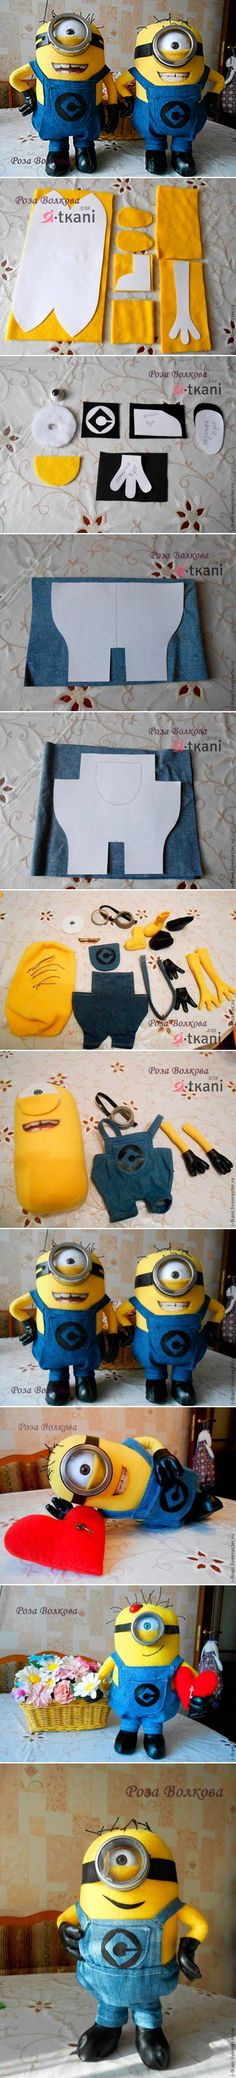 2 of Minion Dolls diy craft crafts craft ideas easy crafts diy ideas diy crafts sewing easy diy kids crafts kids diy craft gifts kids craft sewing ideas sewing crafts fun craft Diy Crafts For Kids Easy, Diy And Crafts Sewing, Kids Crafts, Sewing Projects, Kids Diy, Sewing Ideas, Sewing Diy, Diy Projects, Fun Diy